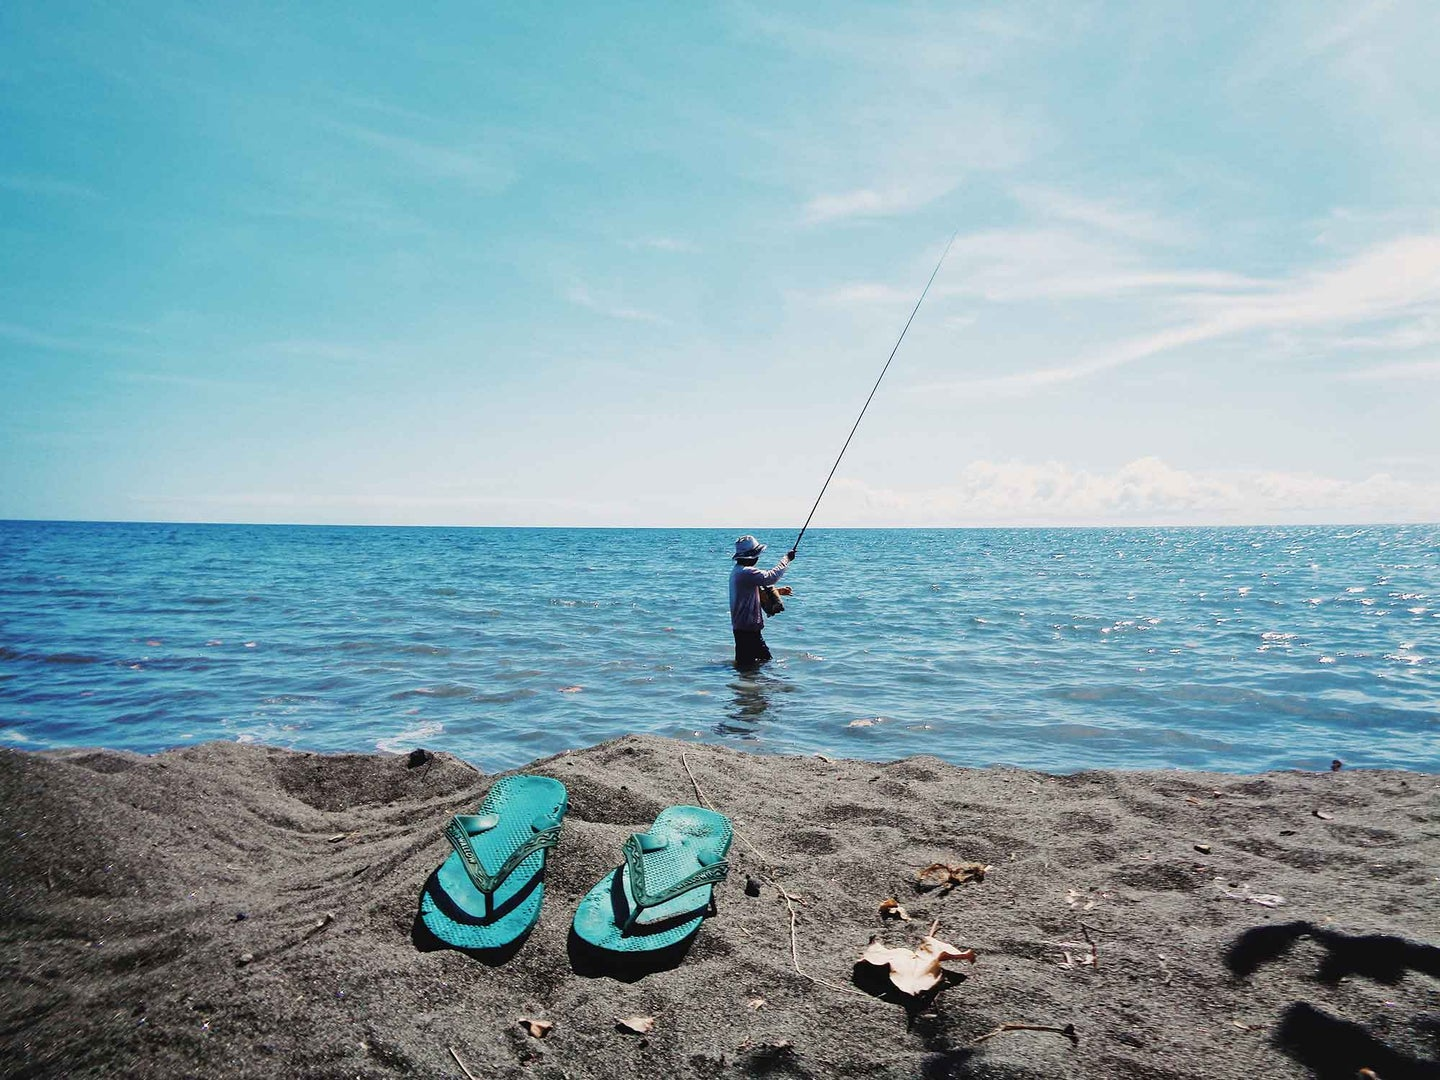 Guy fishing in the ocean with sandals on the beach